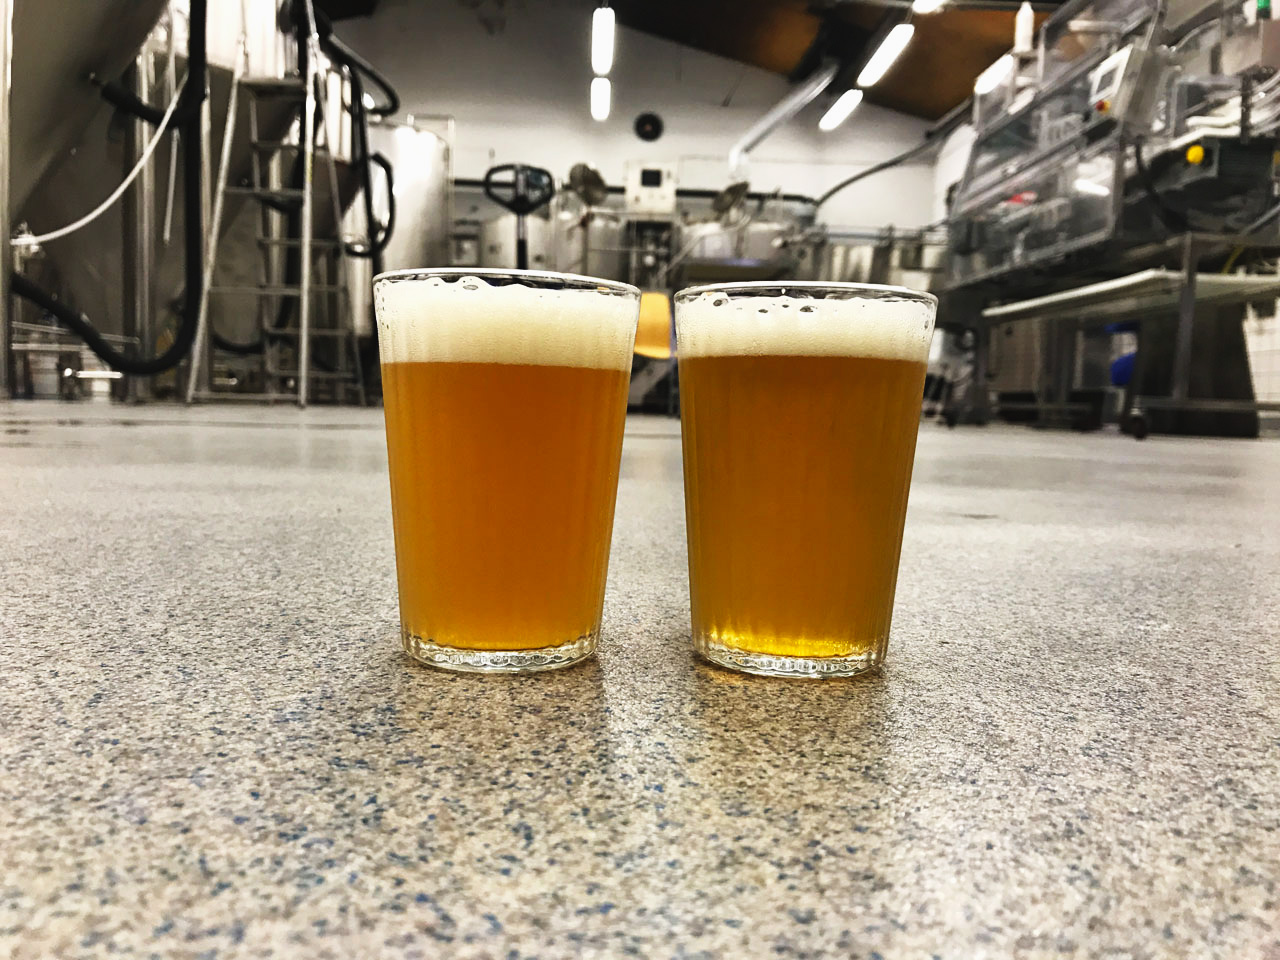 Two glasses of beer on the Beerbliotek Brewery floor. On the left is a hazy New England IPA and on the right is a clear West Coast IPA.